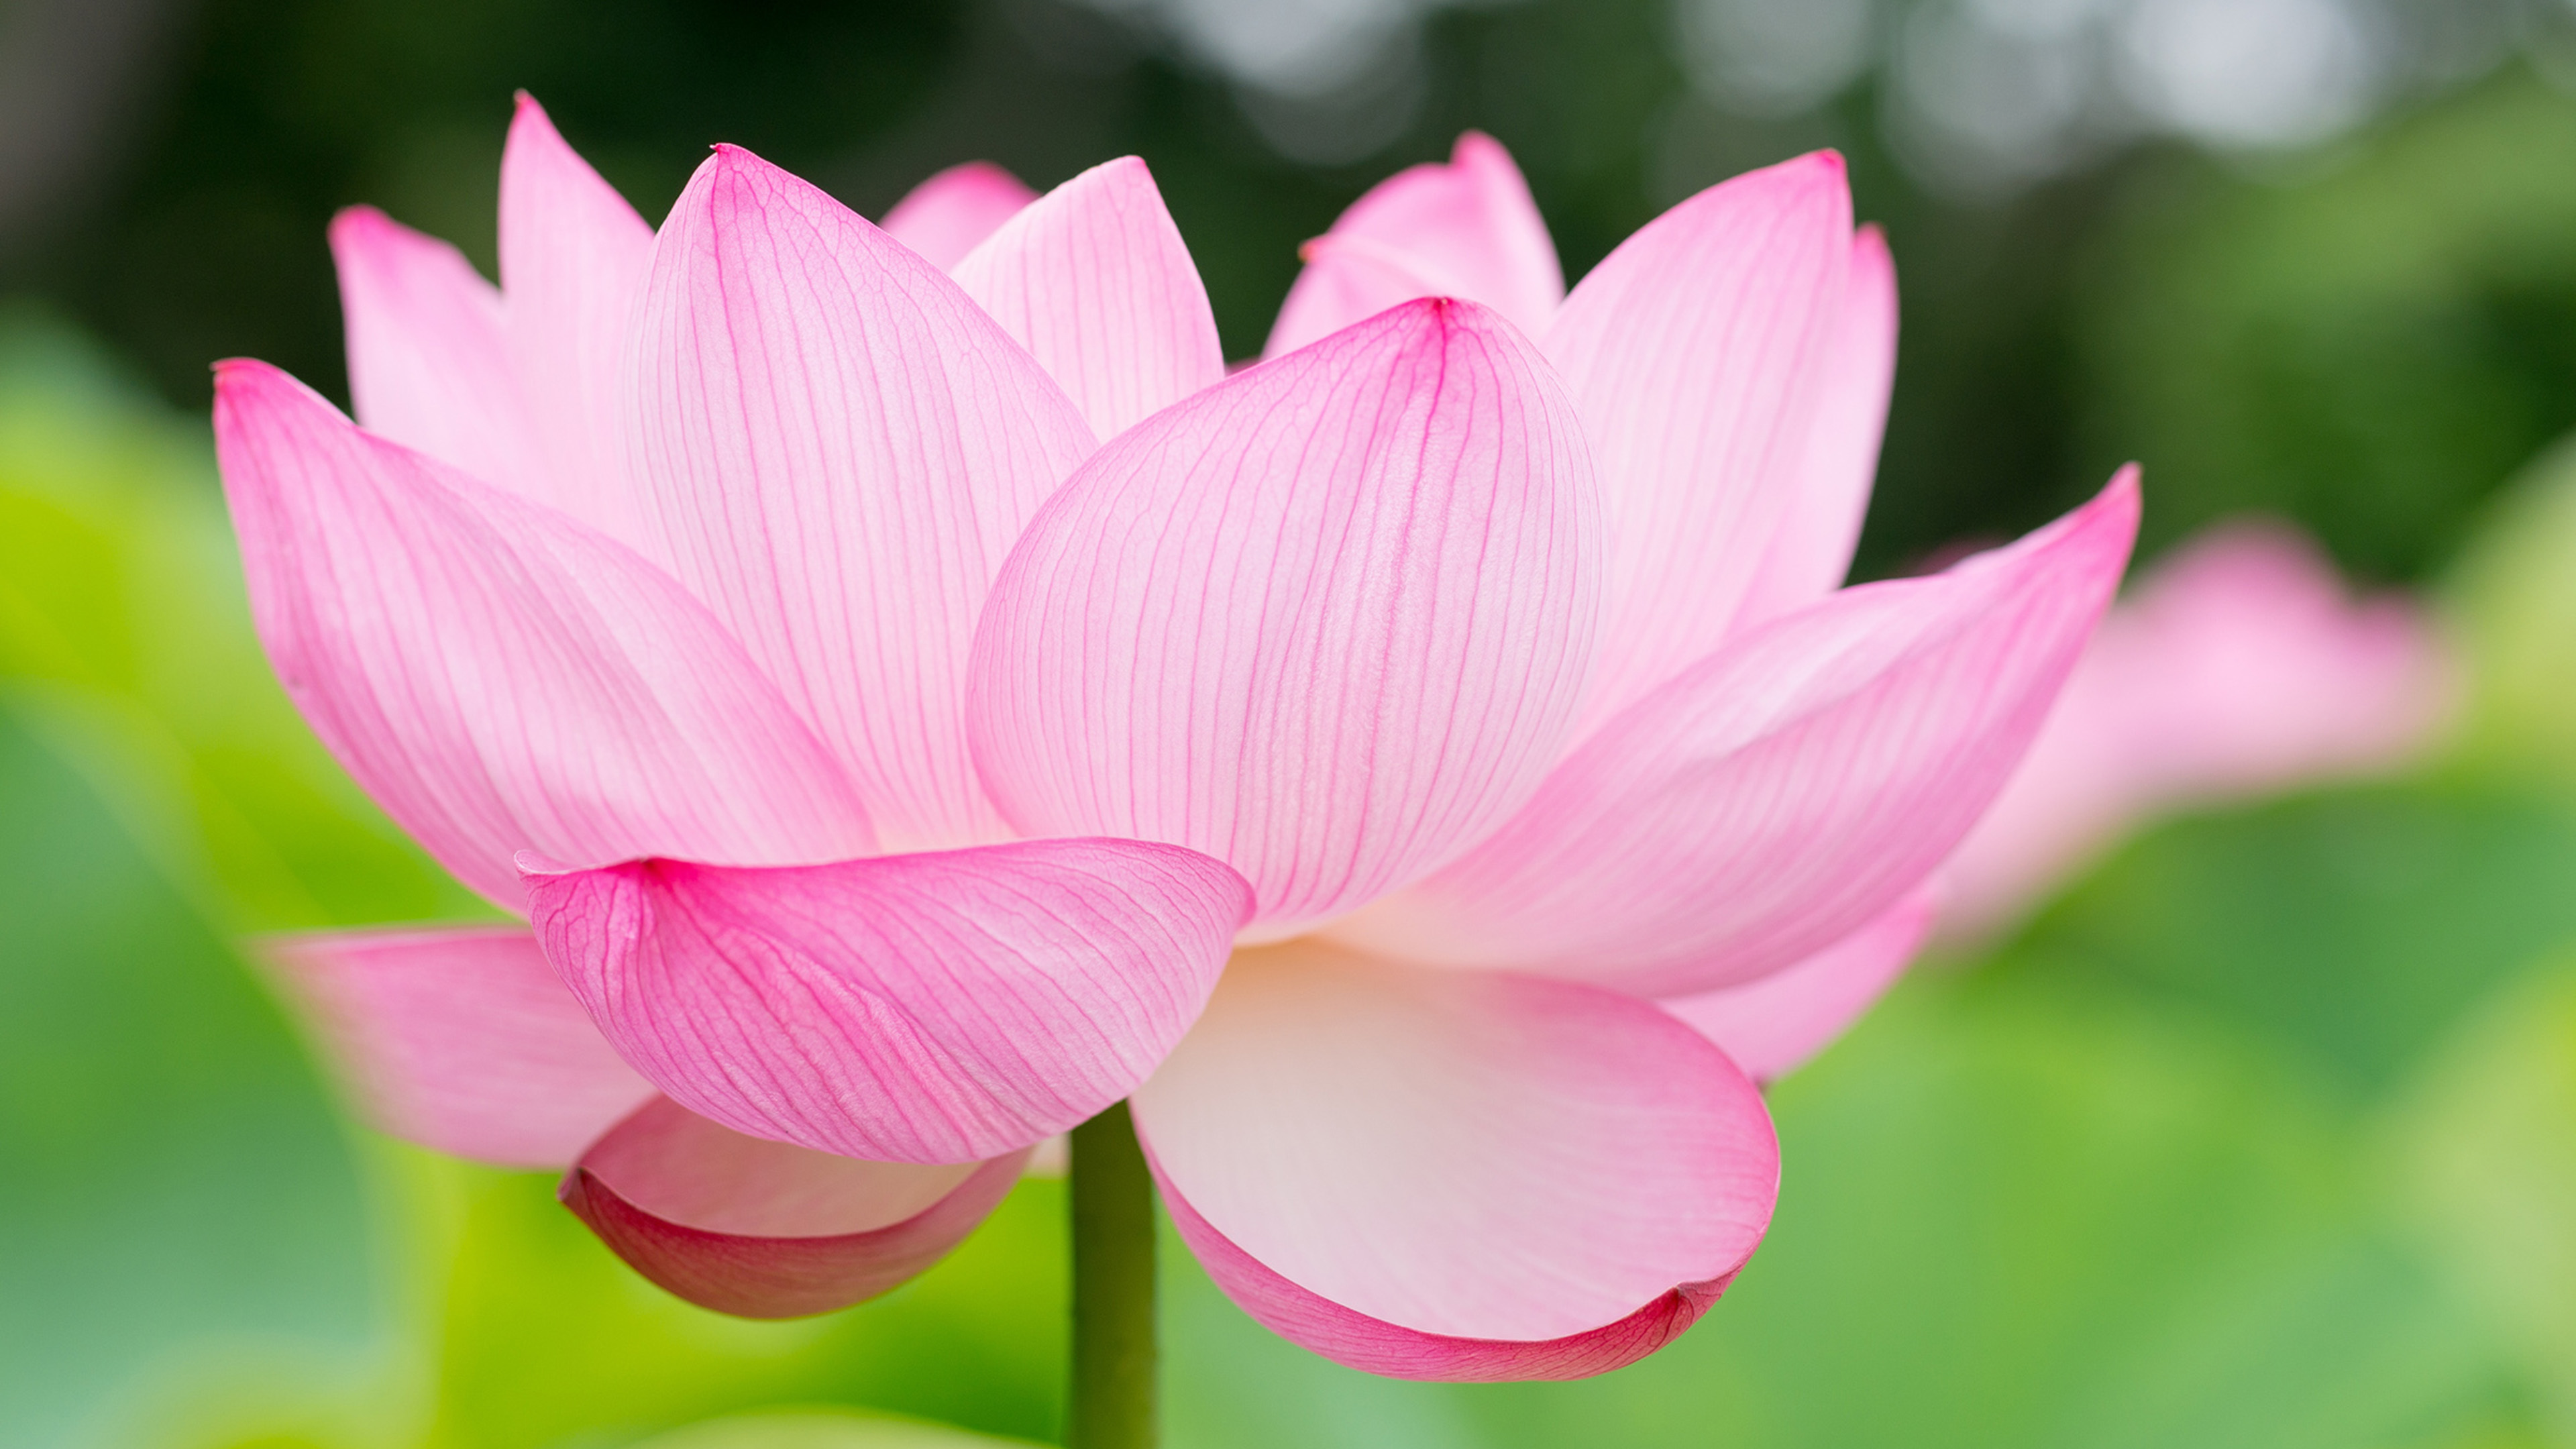 lotus flower 4k ultra hd wallpaper and background image